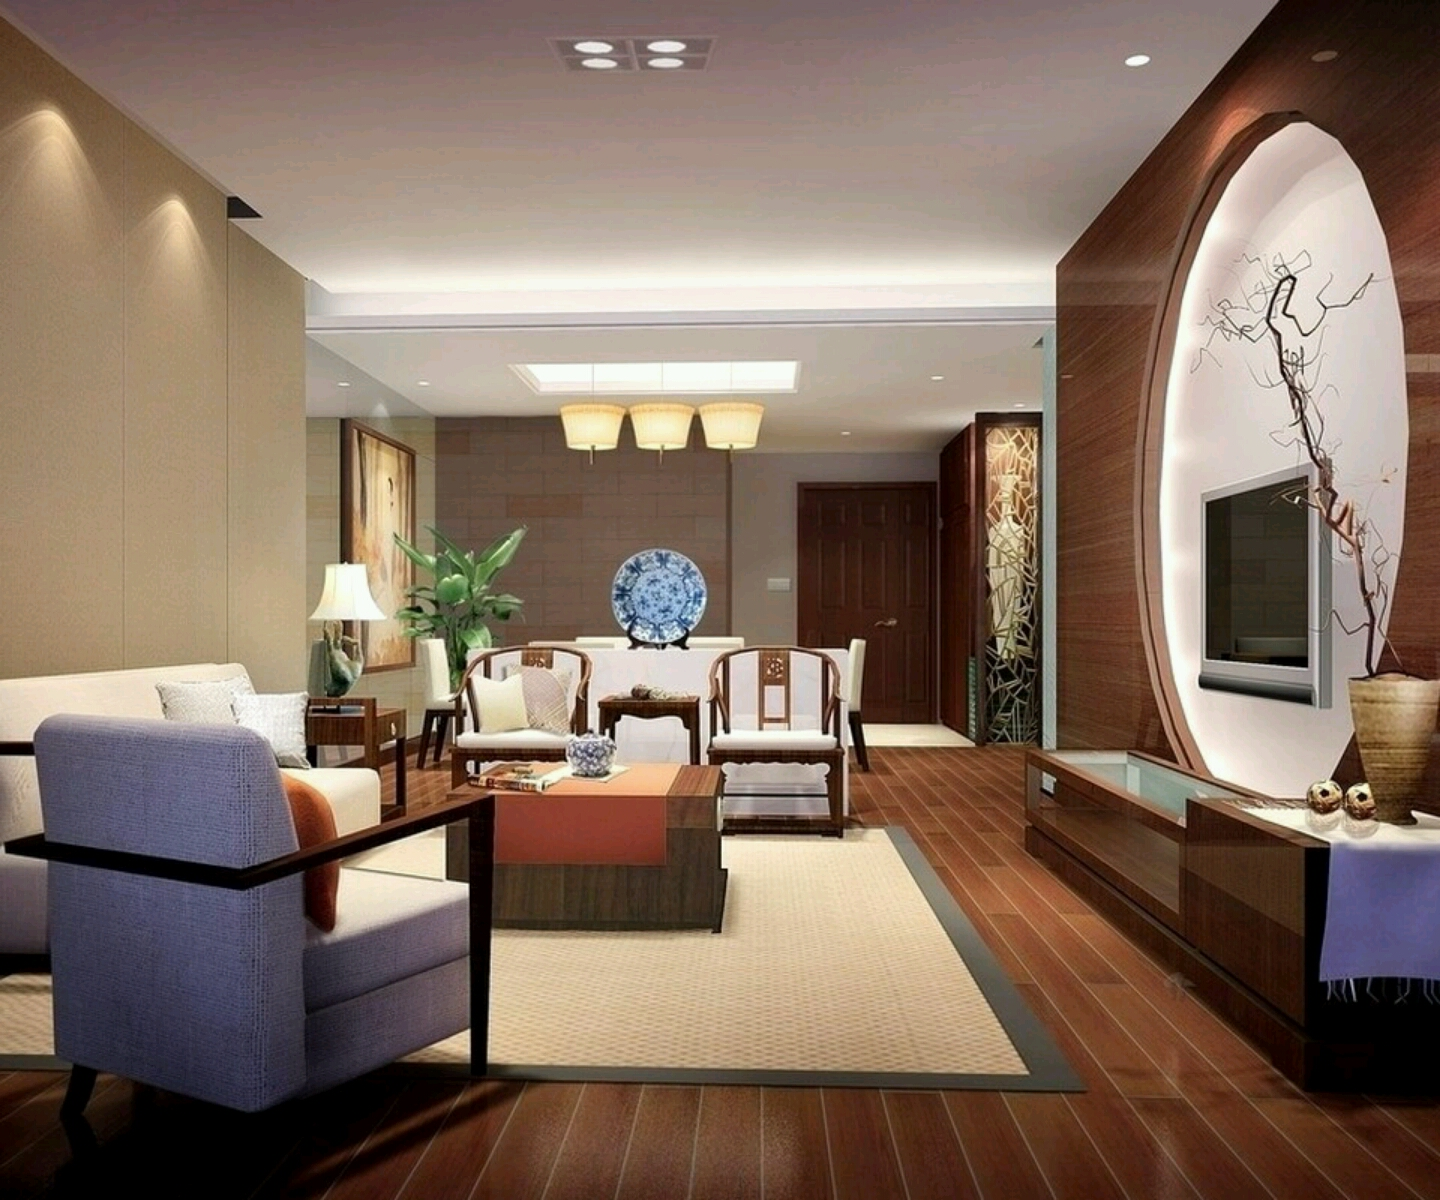 Luxury homes interior decoration living room designs ideas for Internal design living room